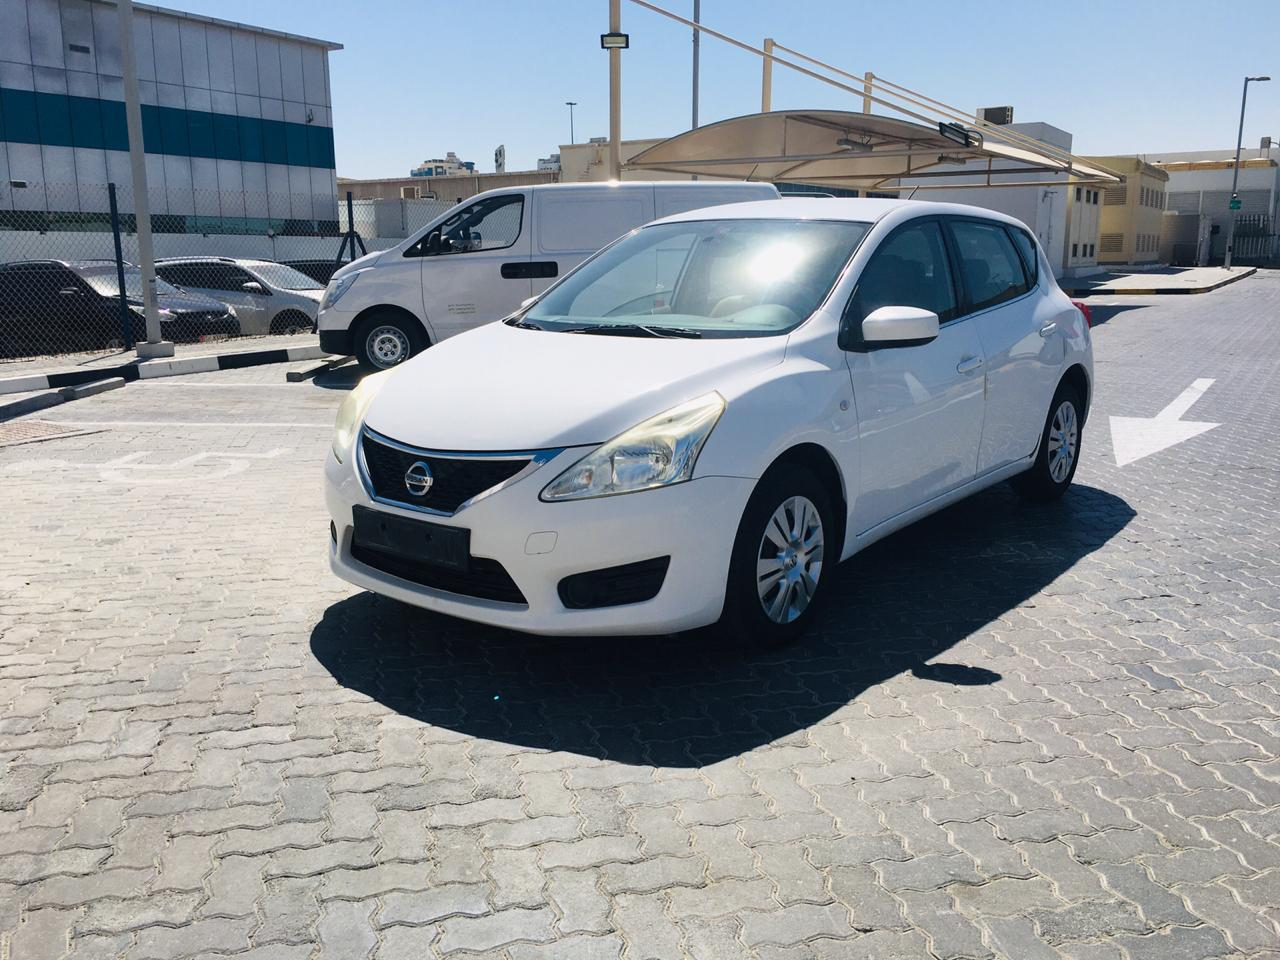 Used Nissan Tiida (1.6 SV) 2014 For Sale In Dubai